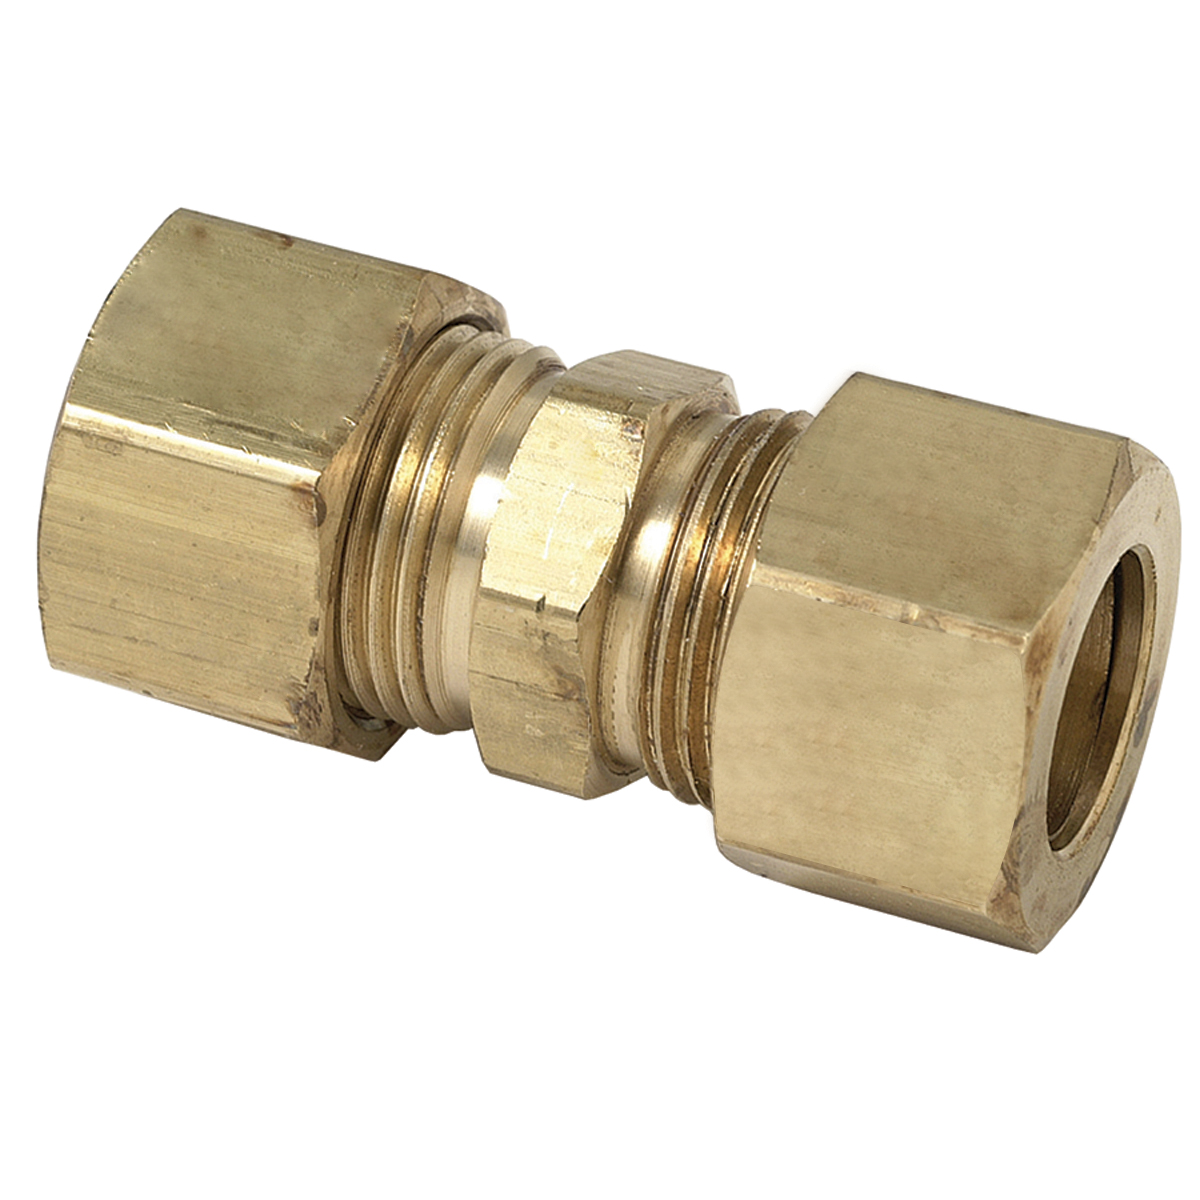 Brass compression fittings st hilaire supply co